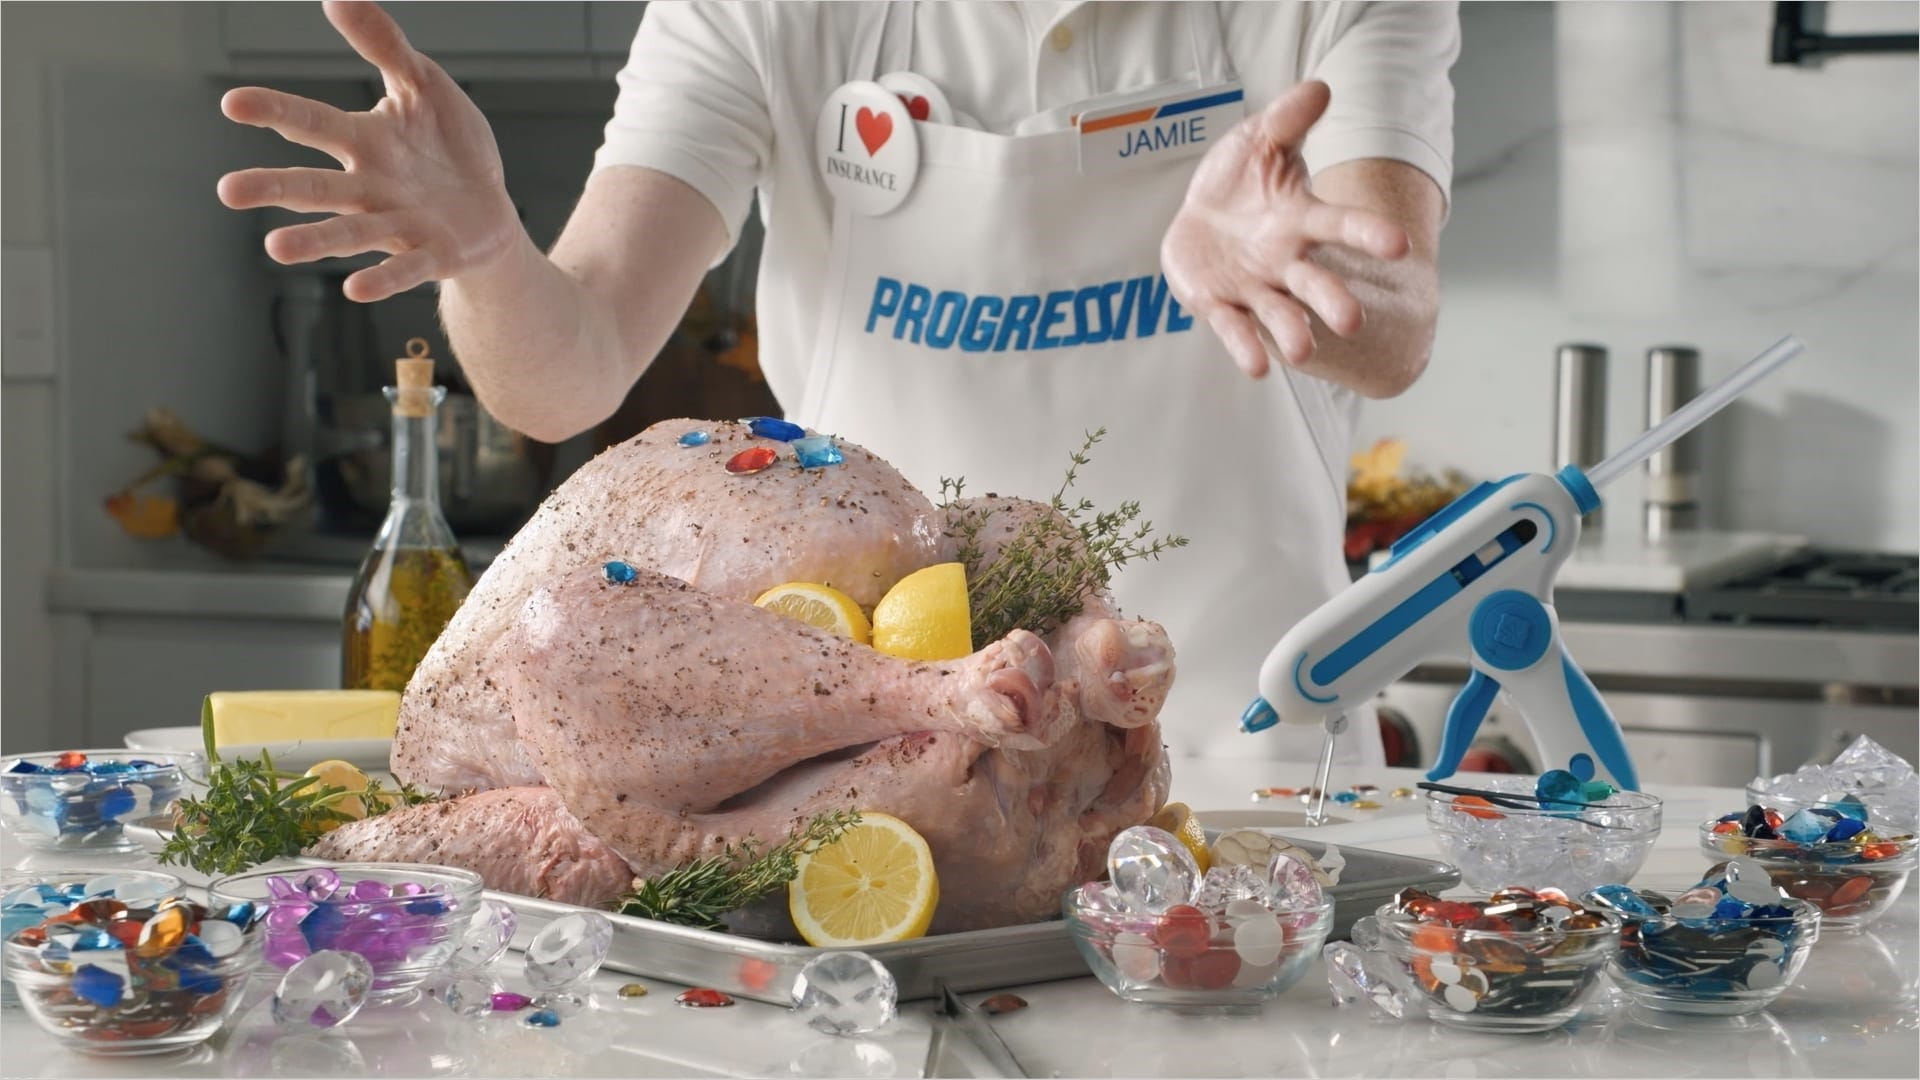 Insure your turkey for holiday fails? Whole Foods and Progressive offering 'Thanksgiving Turkey Protection Plan'